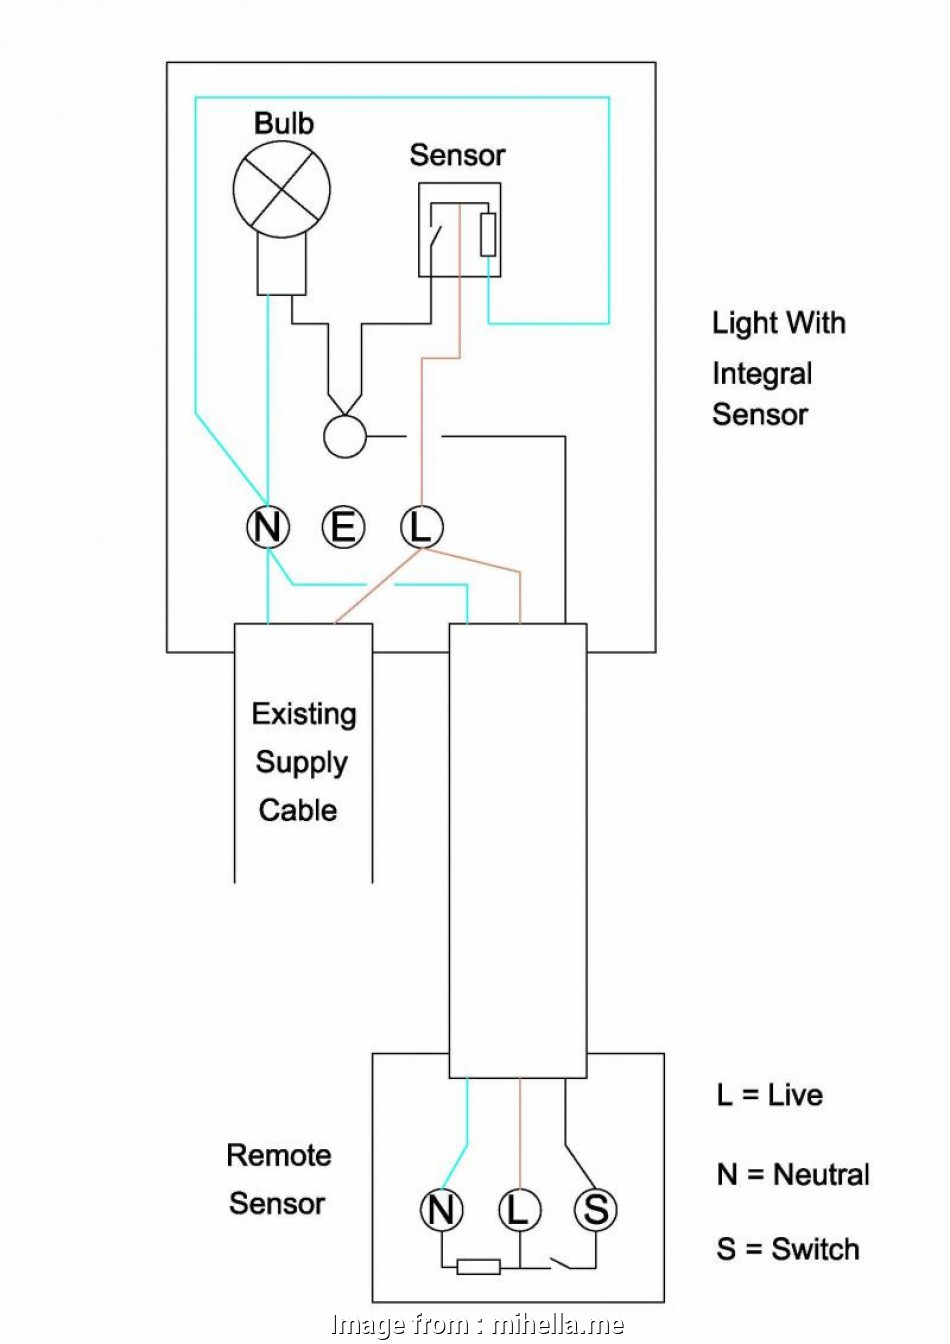 Wiring A Switch To Existing Light Simple Wiring Diagram